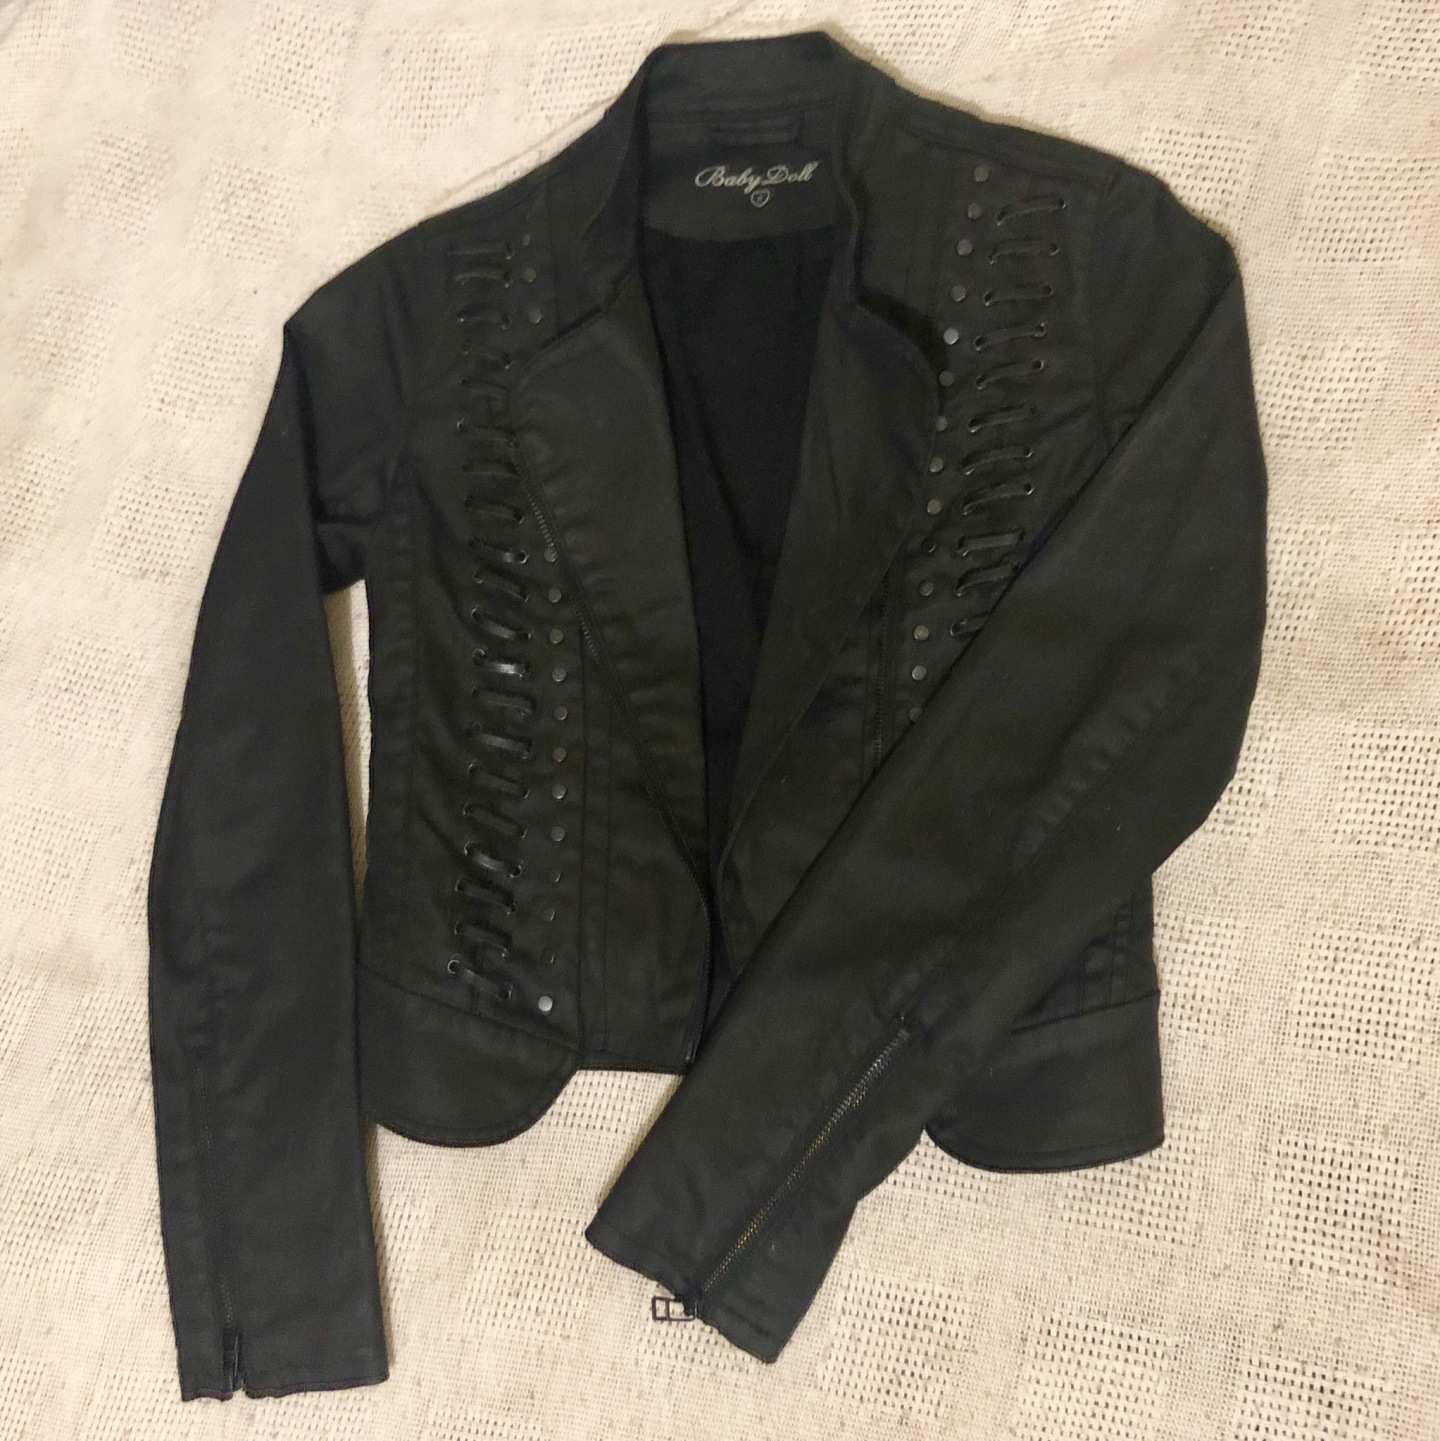 This waxed denim Jacket was an absolute bargain, the original $300 price tag was still on it!